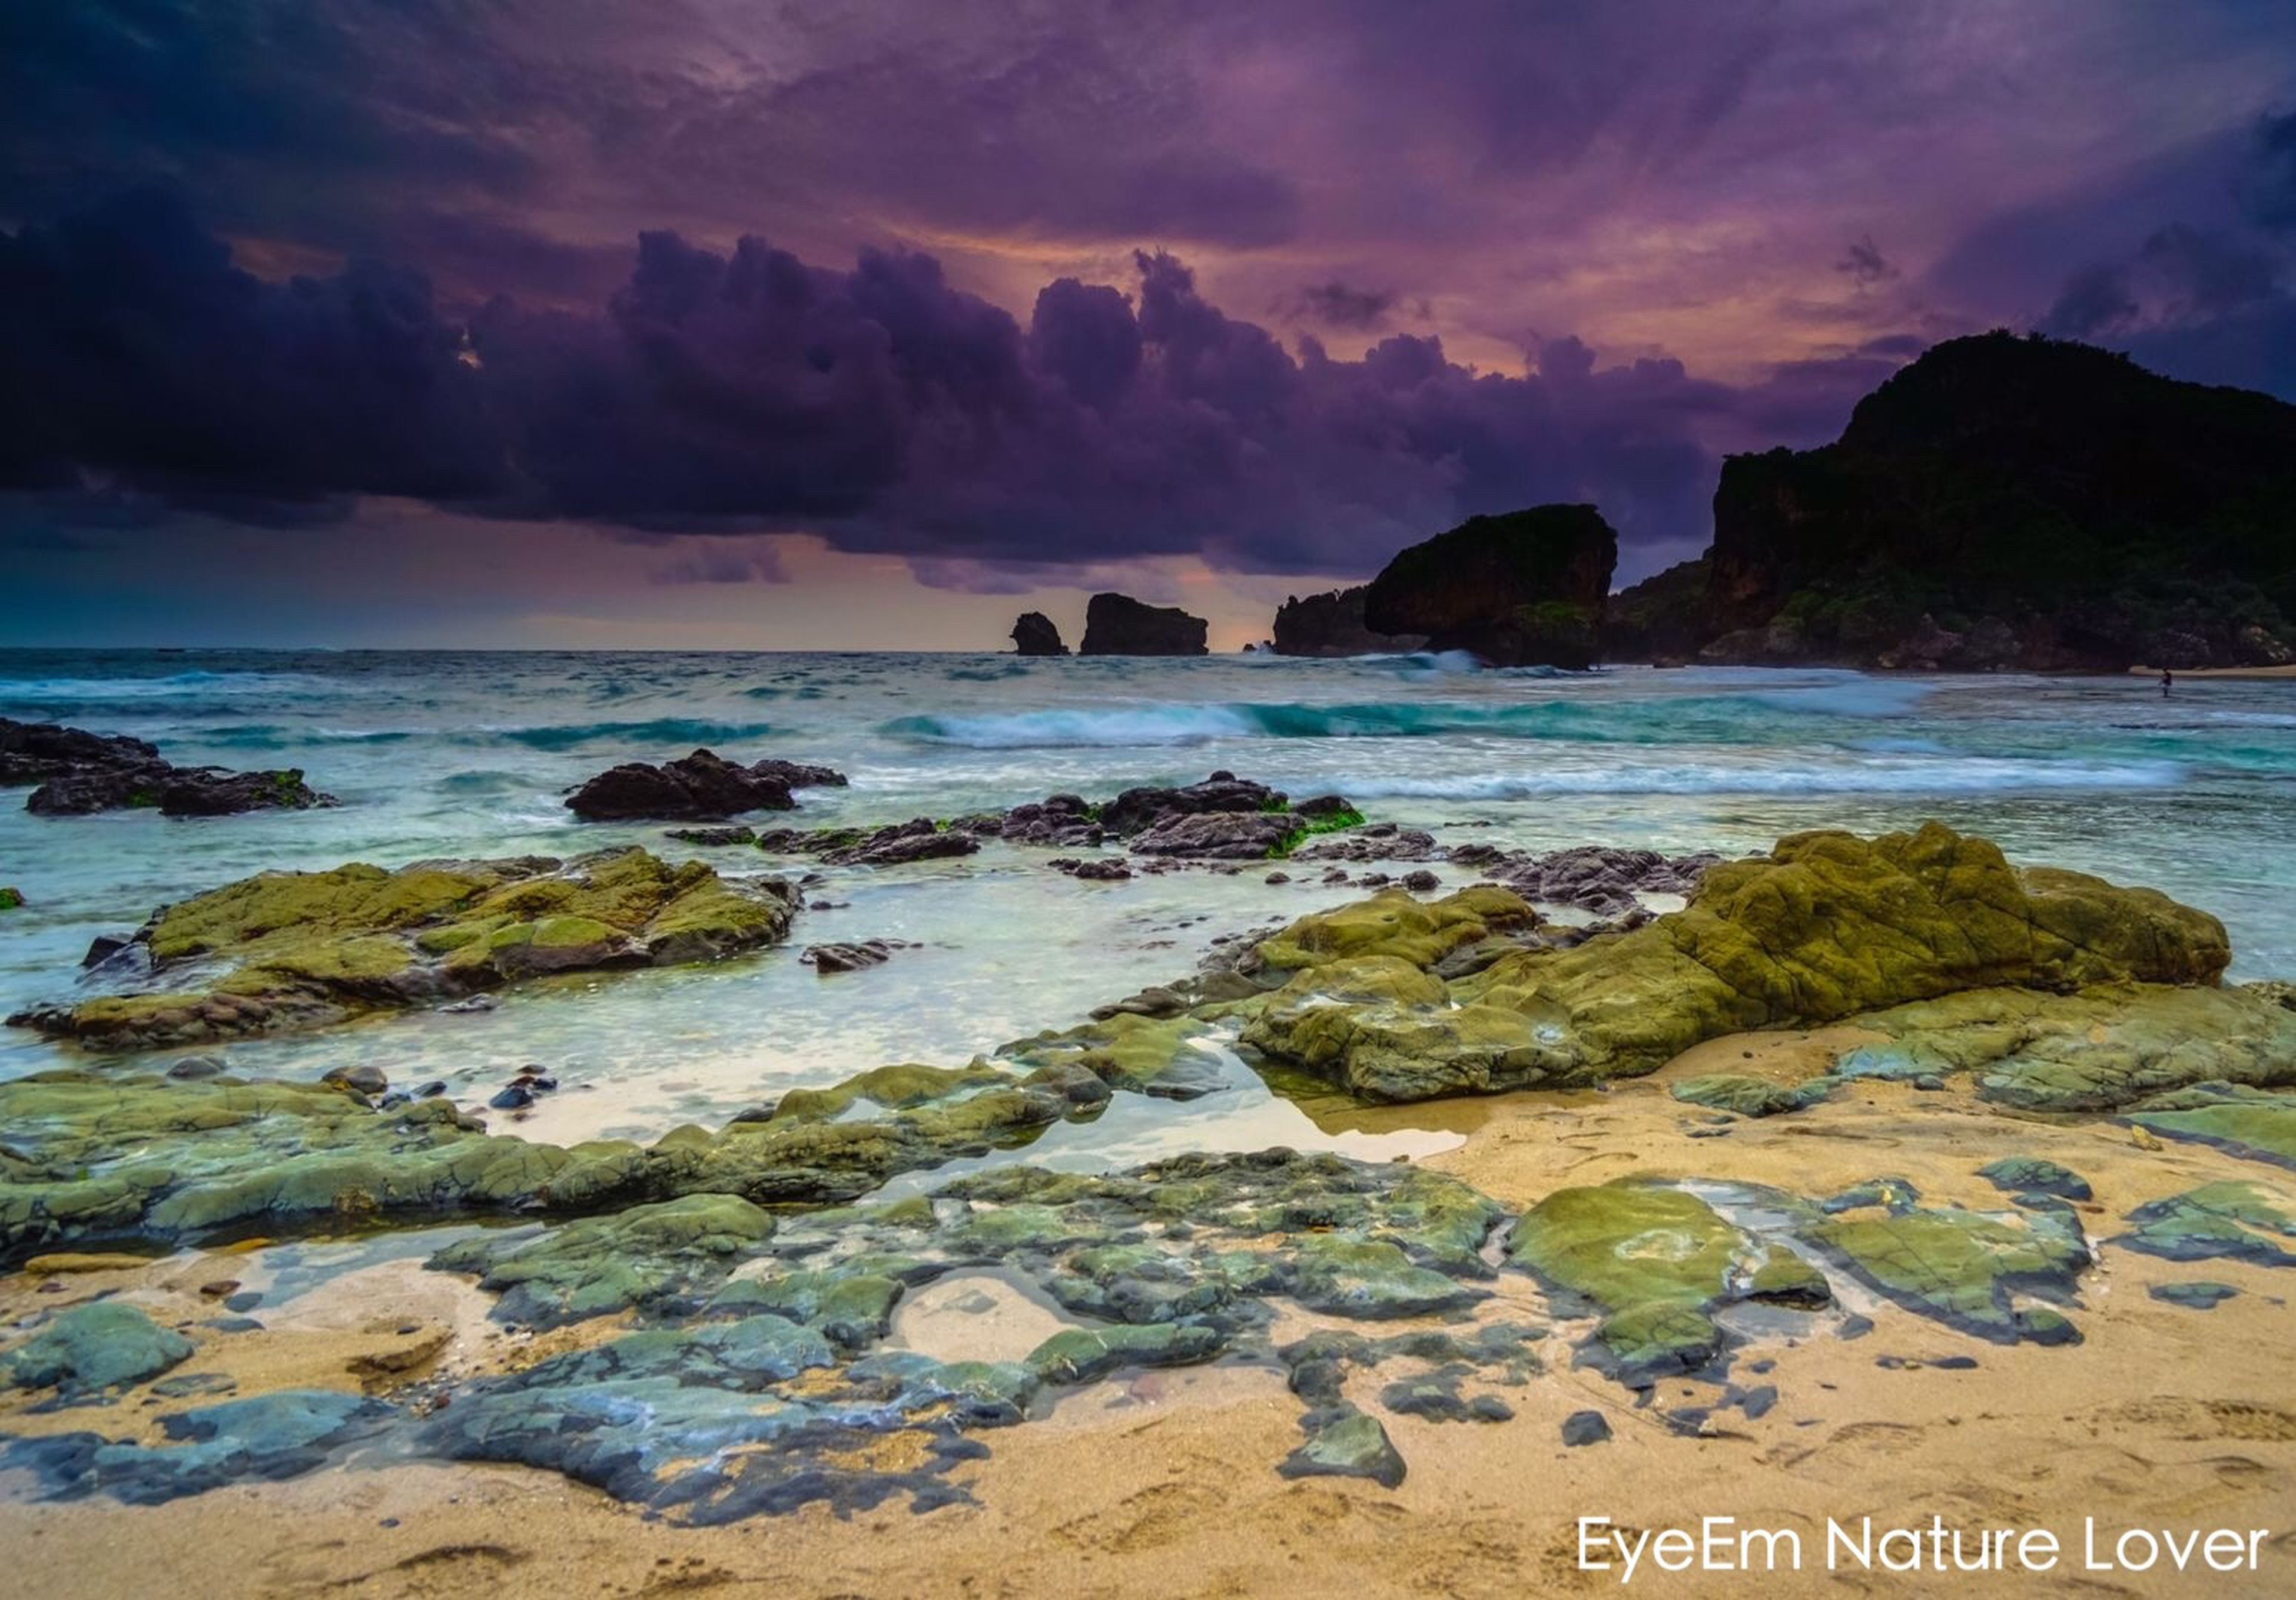 water, sea, sky, scenics, tranquil scene, beauty in nature, tranquility, rock - object, beach, cloud - sky, shore, sunset, nature, horizon over water, rock formation, idyllic, mountain, coastline, cloud, cloudy